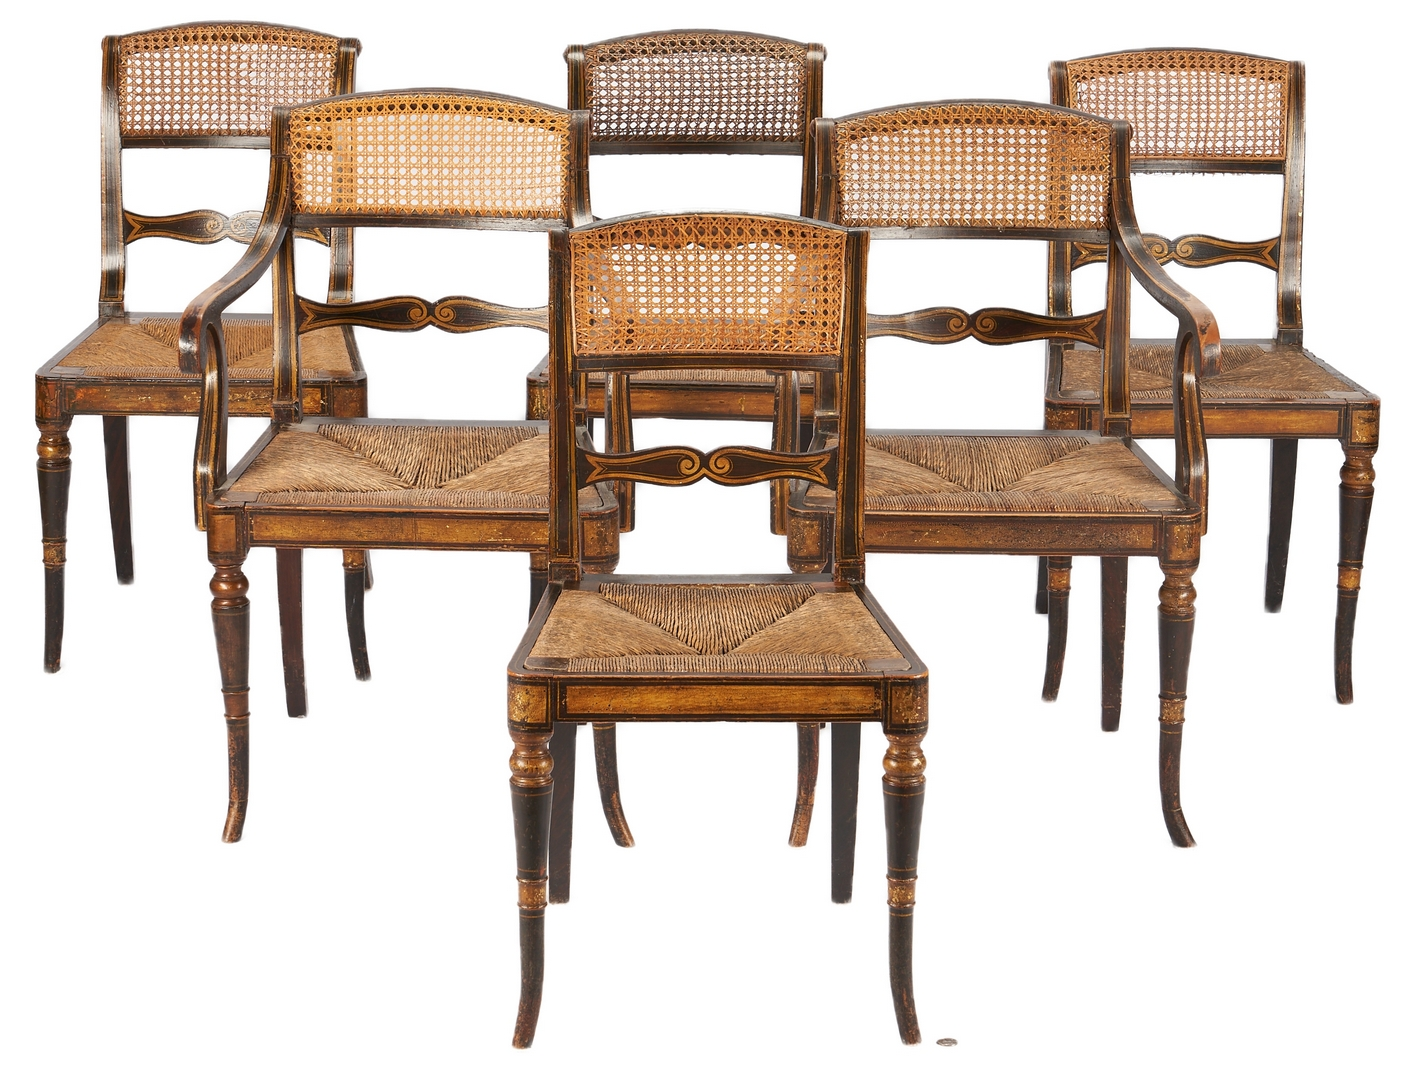 Lot 235: Set of 12 English Regency Paint Decorated Chairs